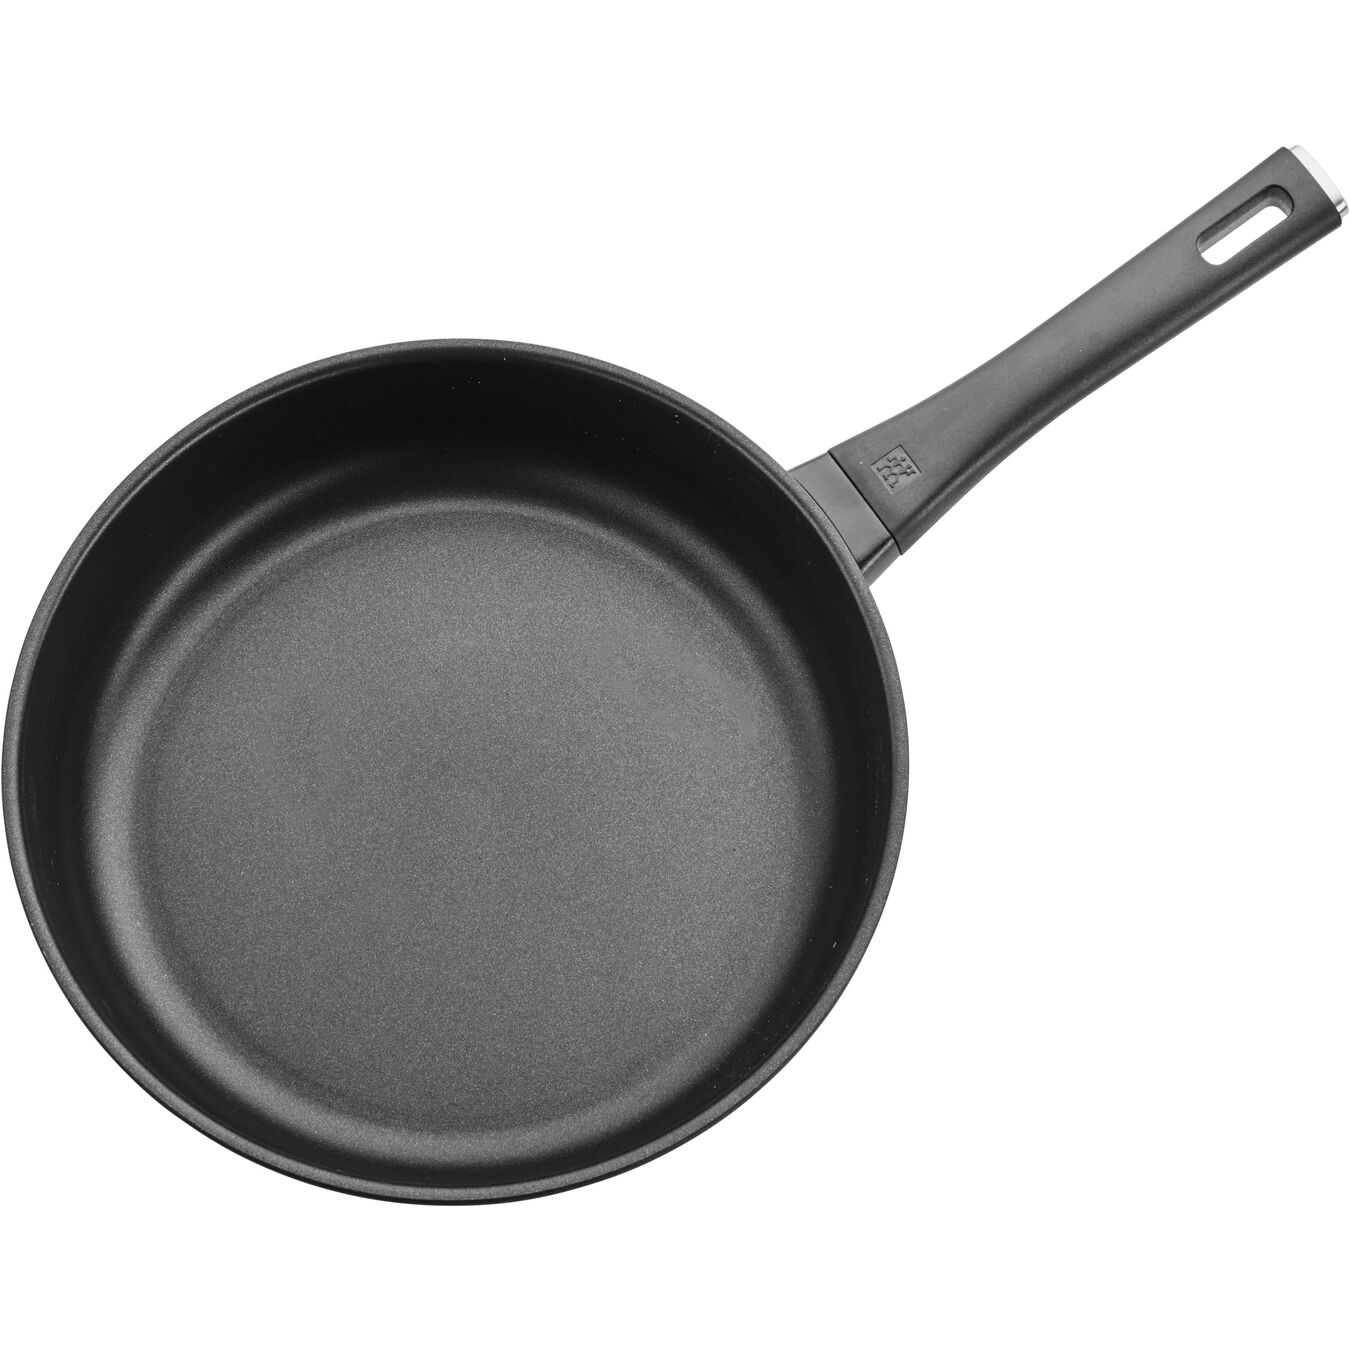 11-inch Nonstick Fry Pan,,large 3